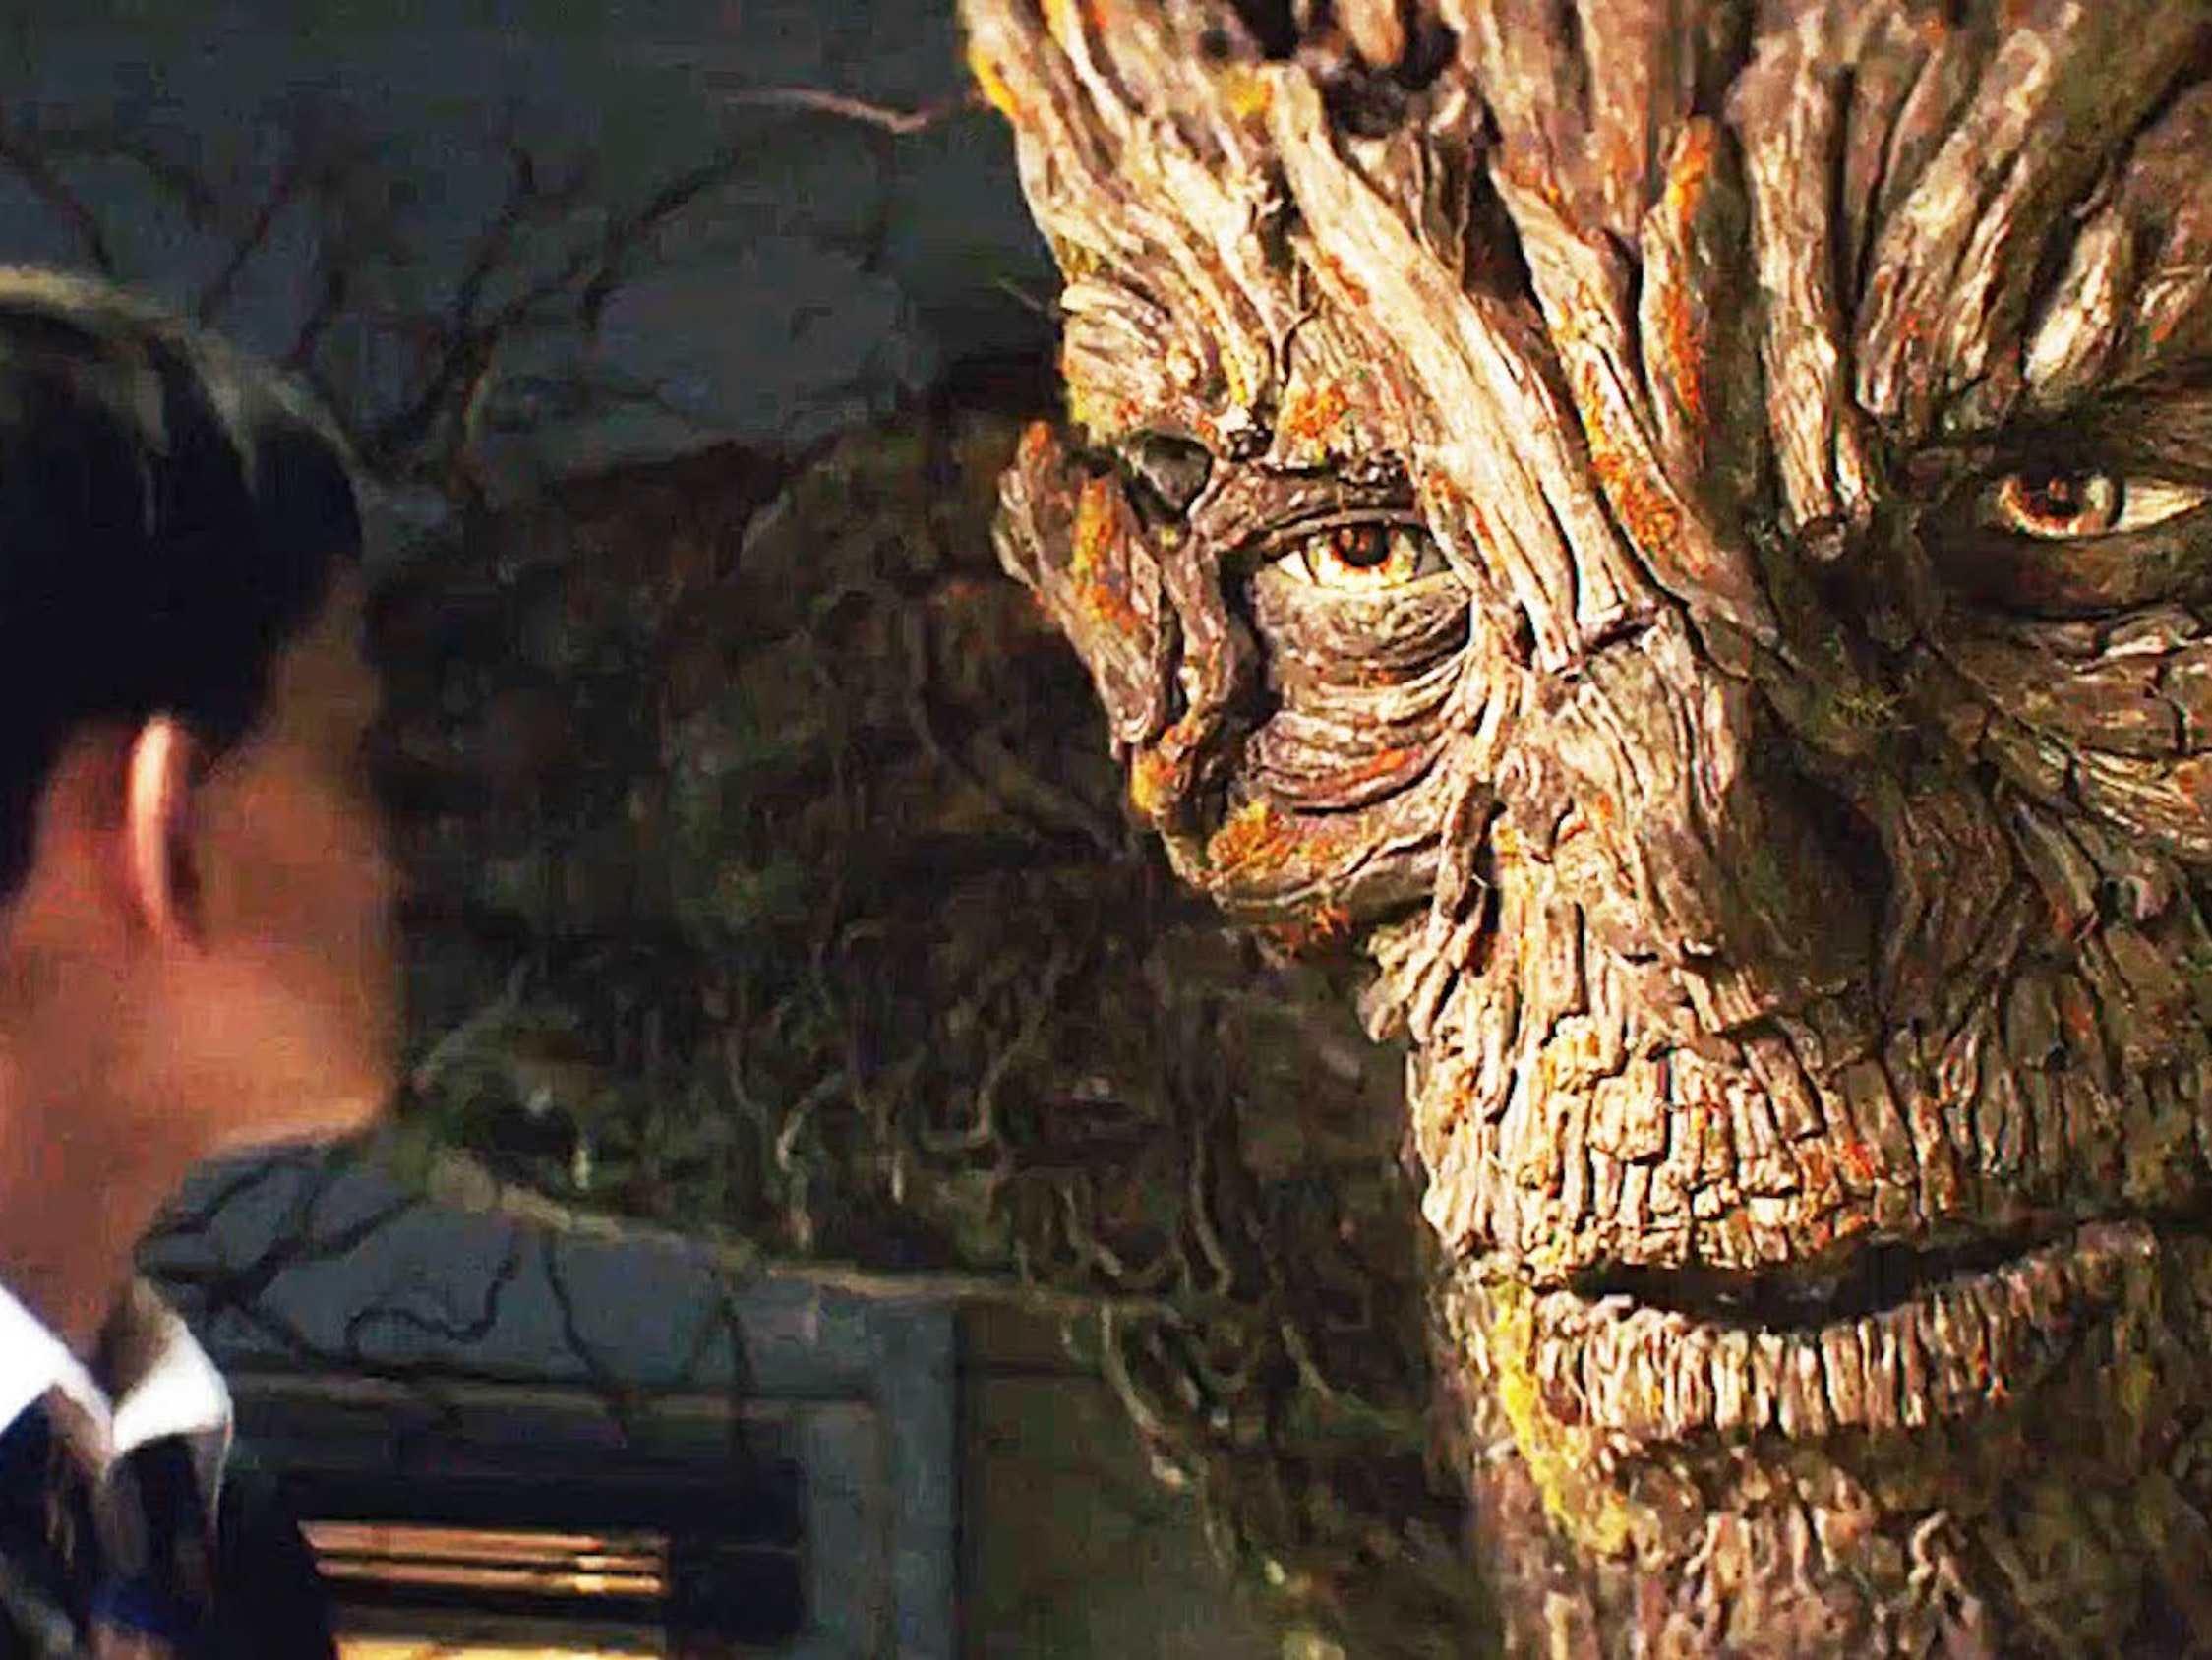 The Tree in 'A Monster Calls' Is More Legit Than Groot